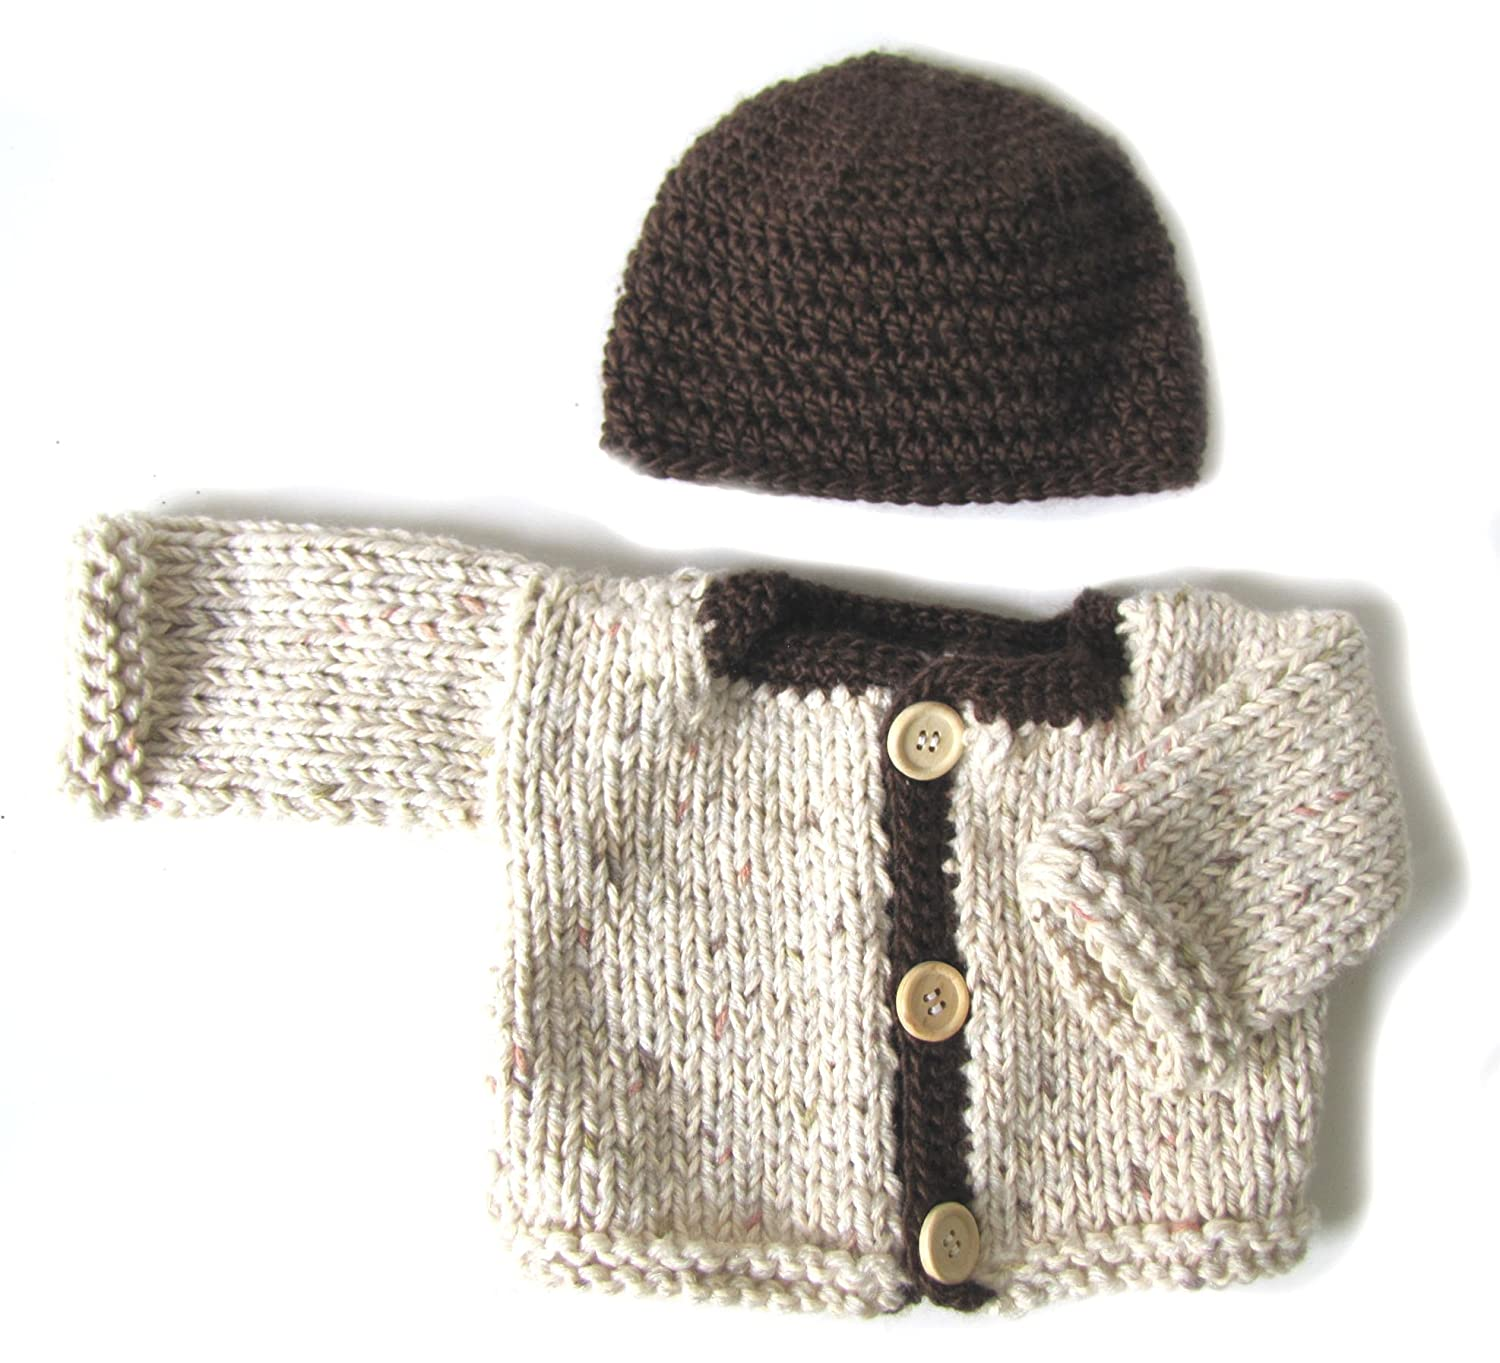 KSS Handmade Earth Beige with Brown trim Cardigan /& Hat 3 Months